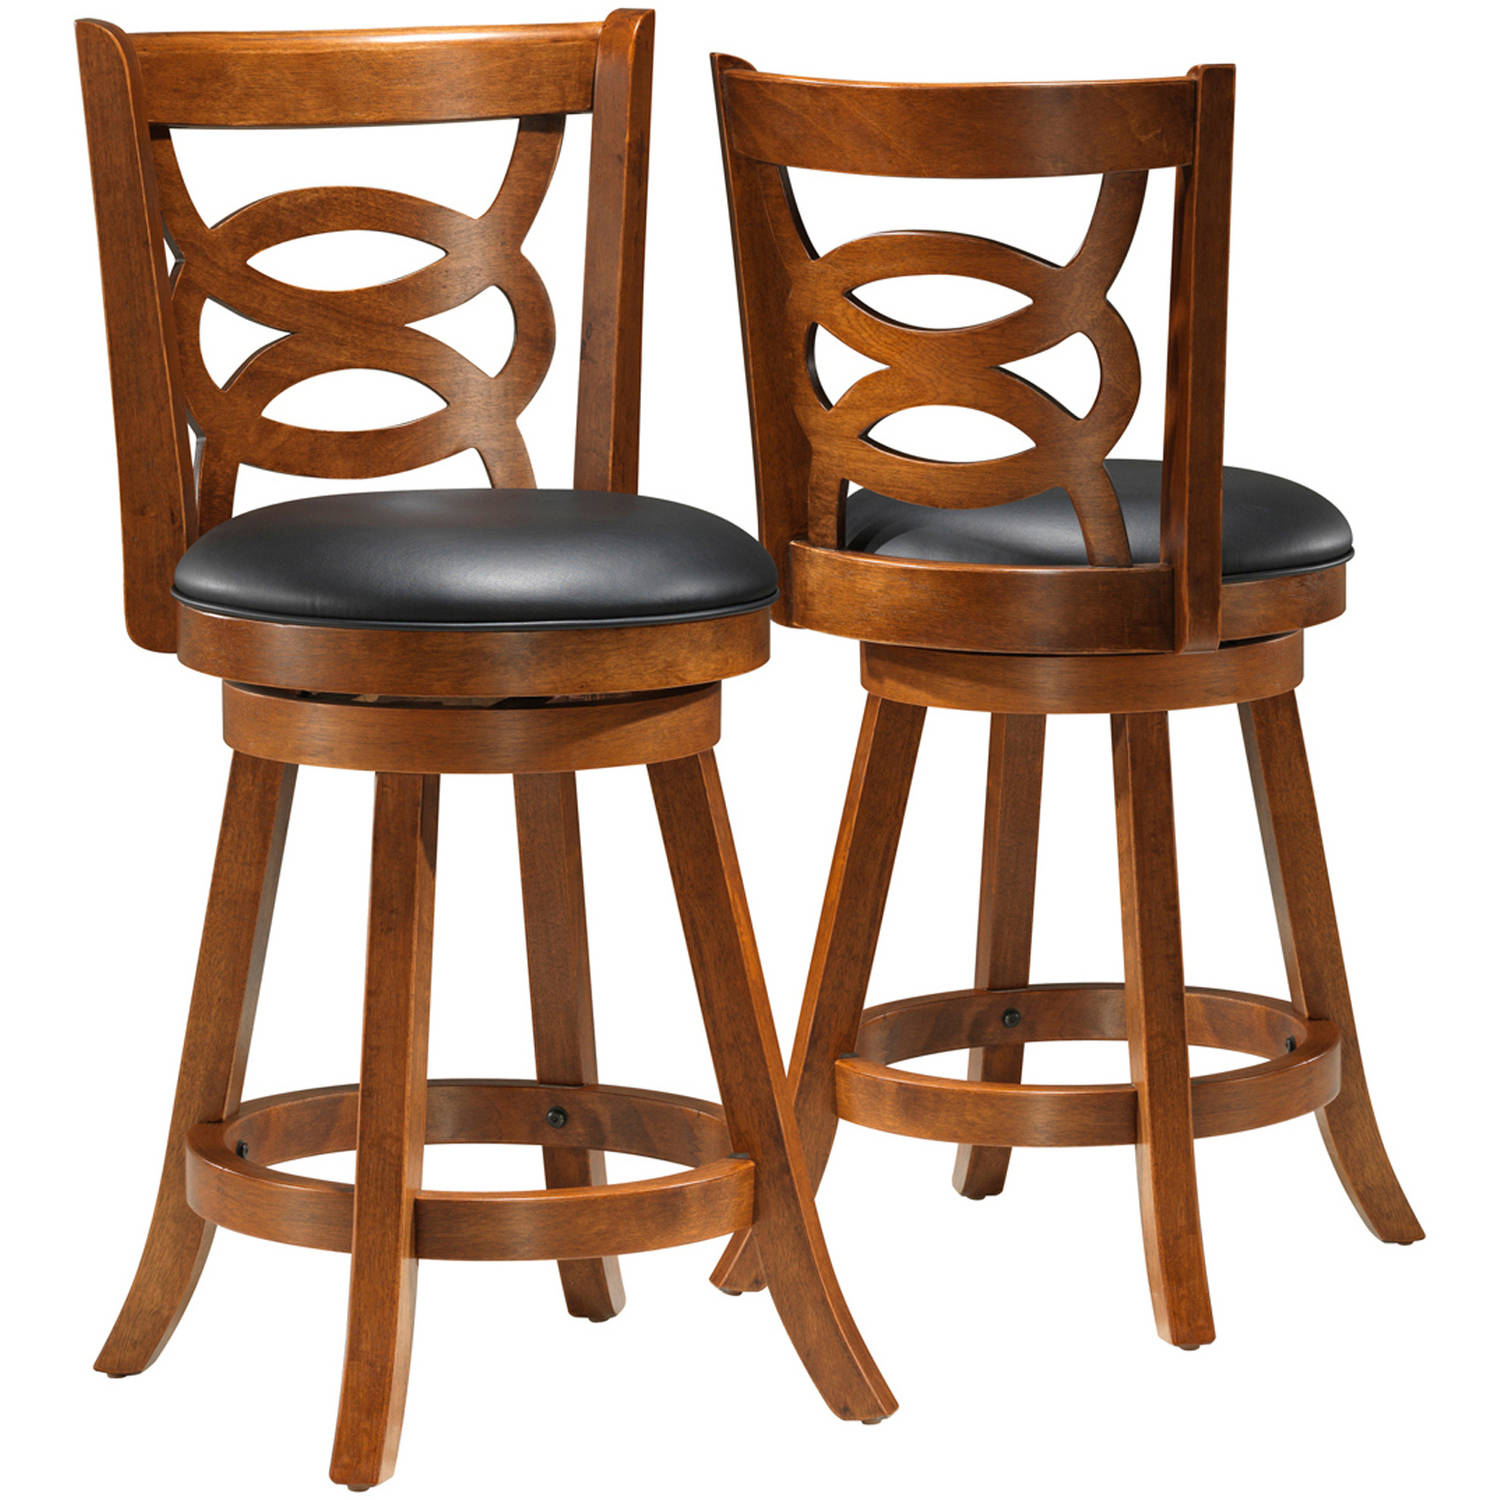 "Monarch Barstool 2Pcs / 39""H / Swivel / Oak Counter Height"